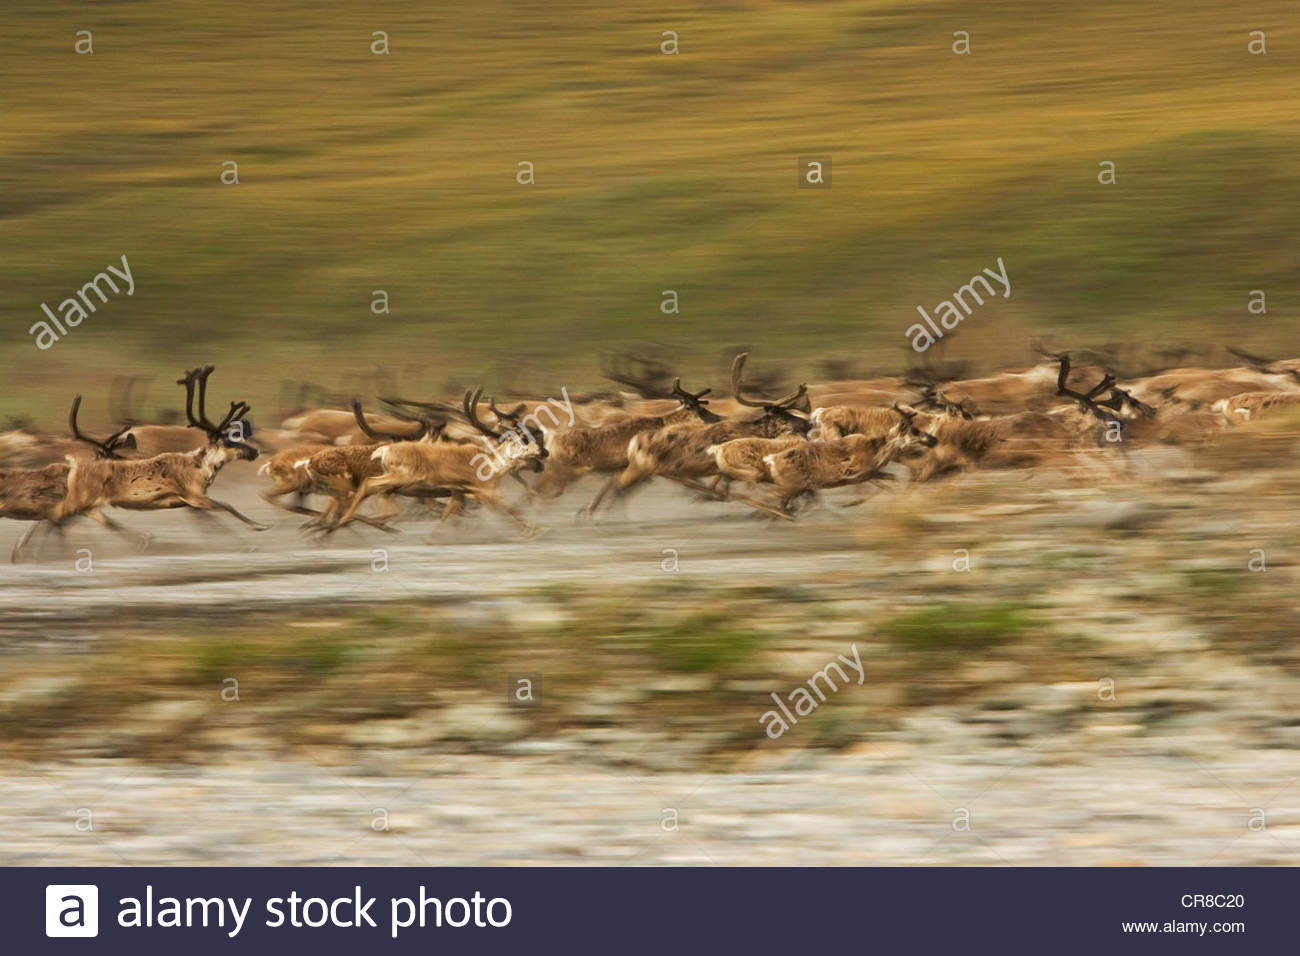 Startled by the sudden appearance of a grey wolf, a caribou herd instinctively reacts. - Stock Image